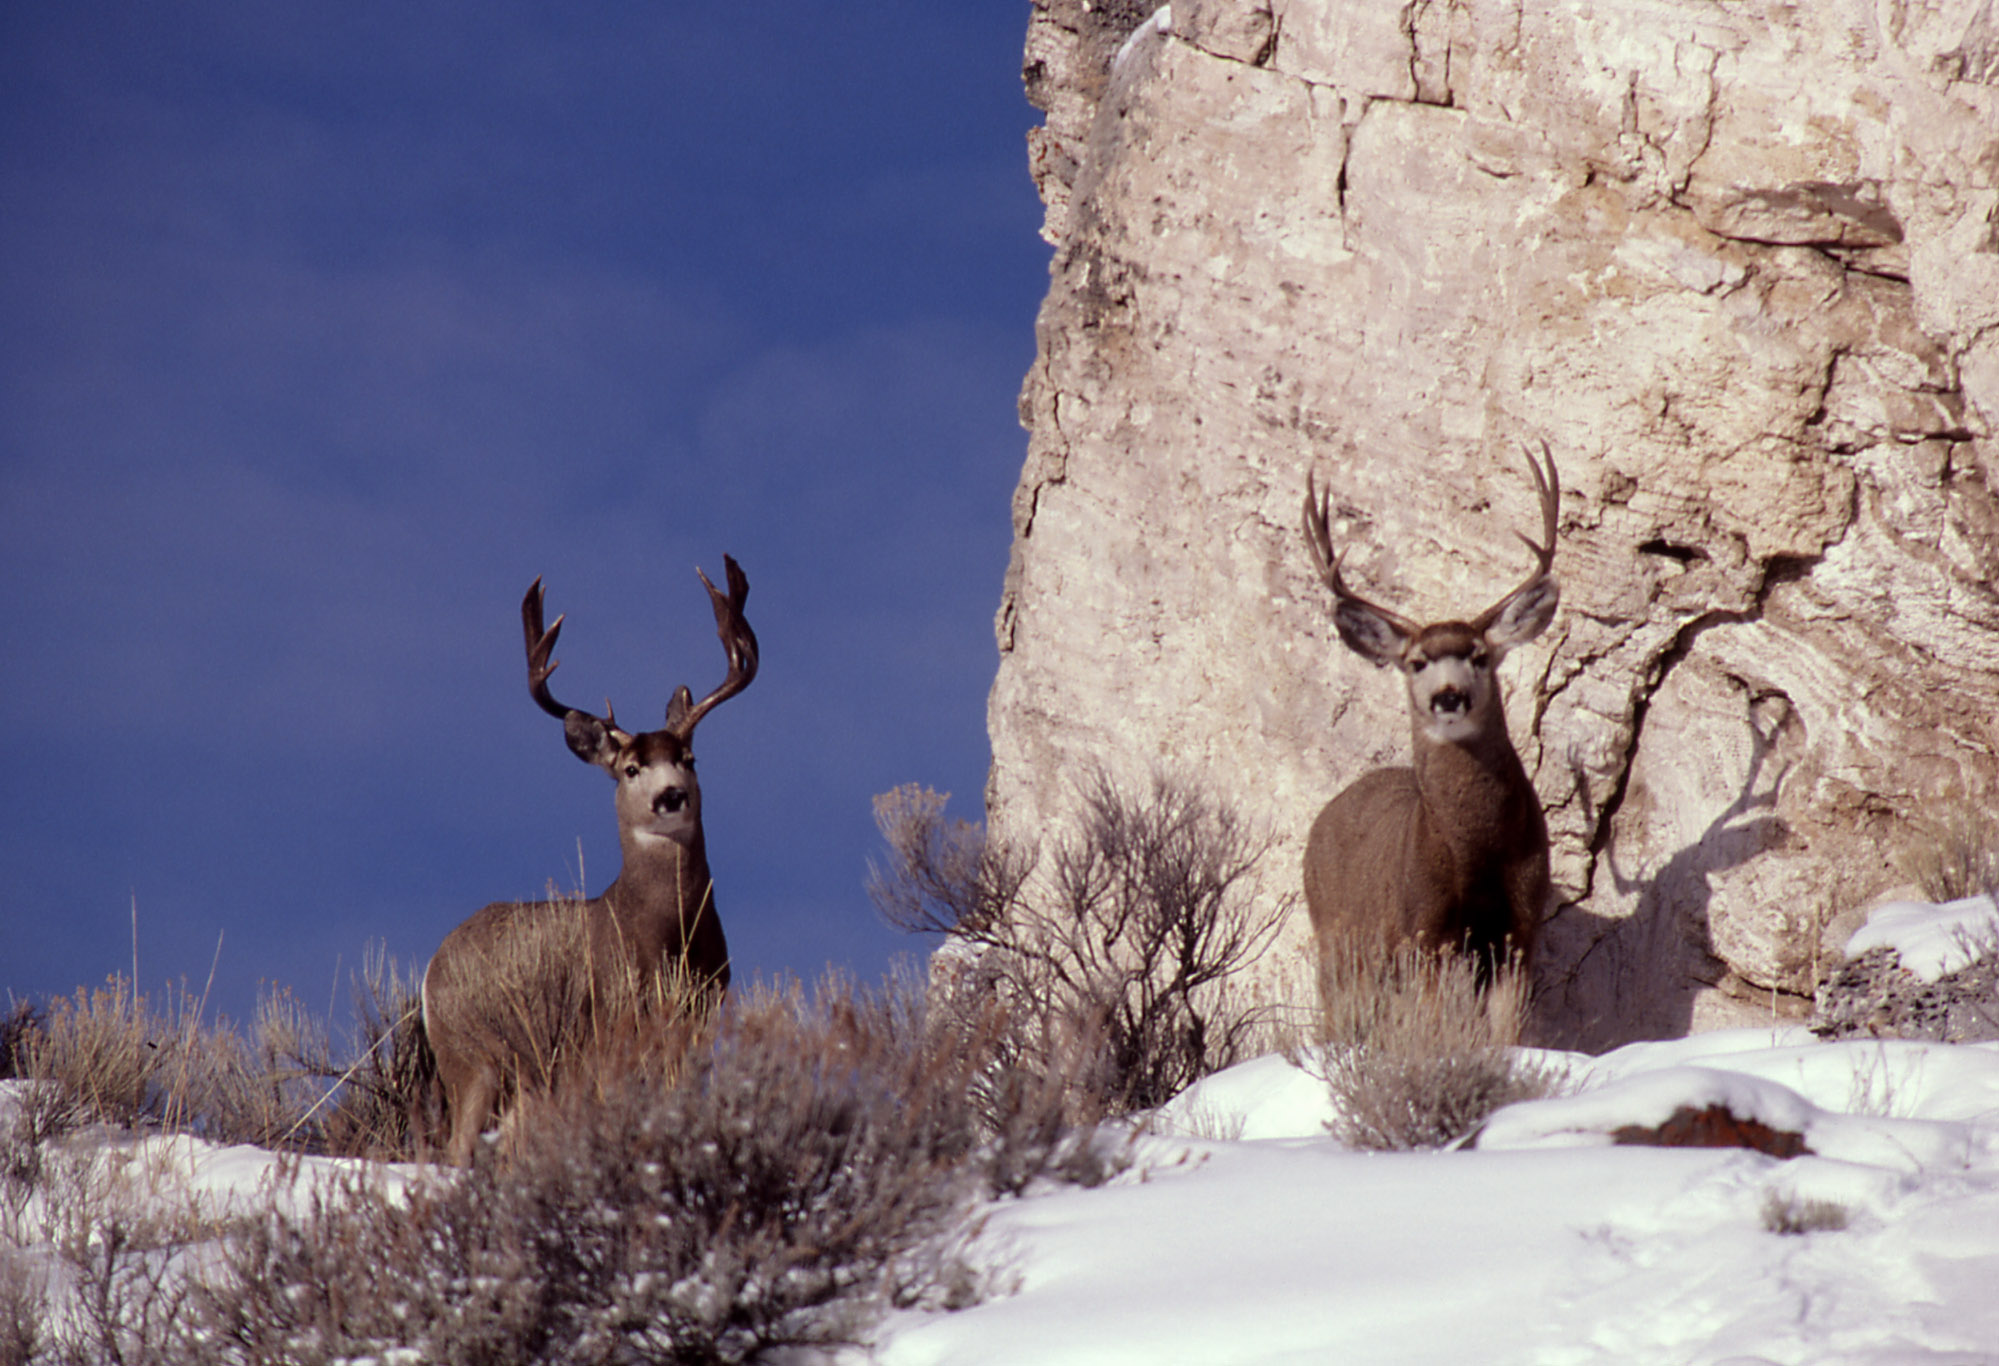 the buck in the snow poetry Poetry friday: winter in poems & paintings millay's a buck in the snow poems-but not the other one you mentioned in your poetry friday.